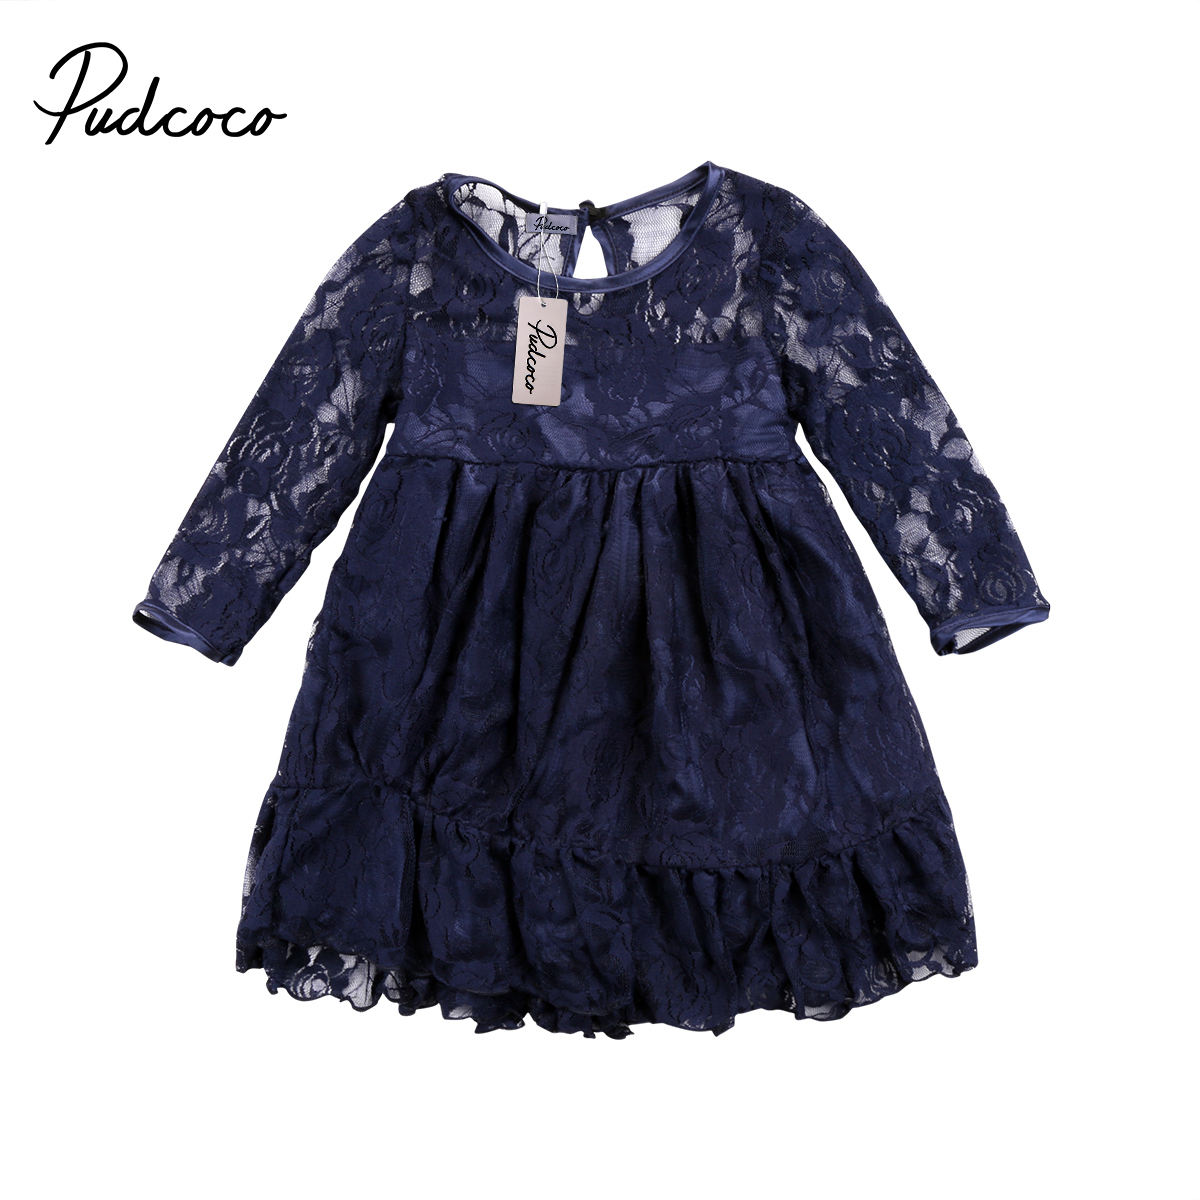 Fashion Kids Baby Girls Bowknot Princess Dress Party Formal Wedding Lace Tutu Dresses Vetidos Long Sleeve Clothing Outfits long criss cross open back formal party dress